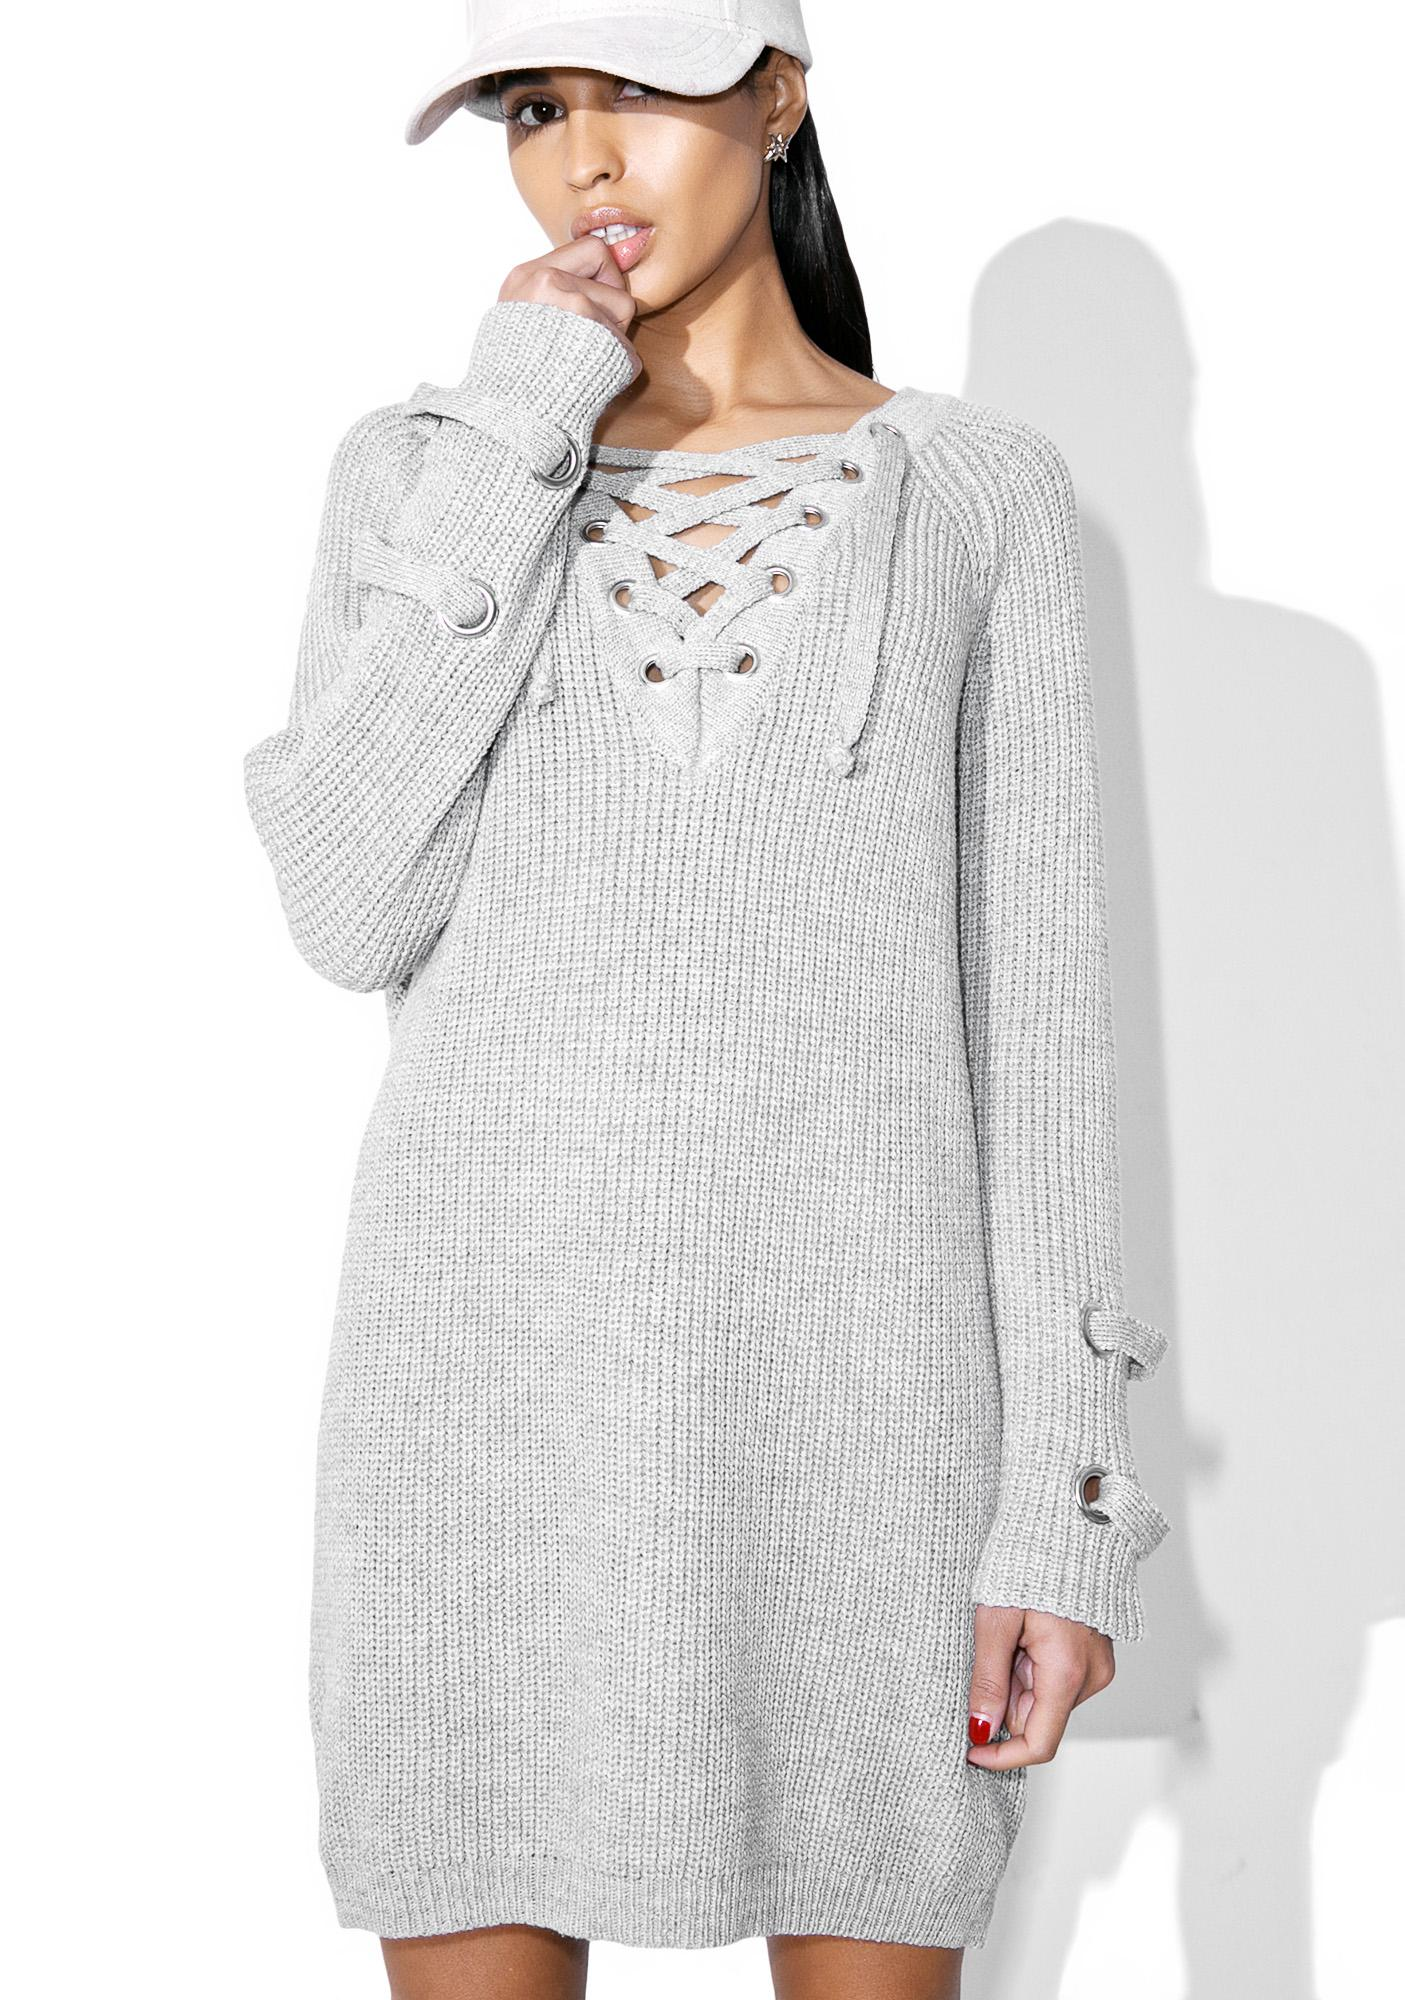 Yawning Sky Lace-Up Sweater